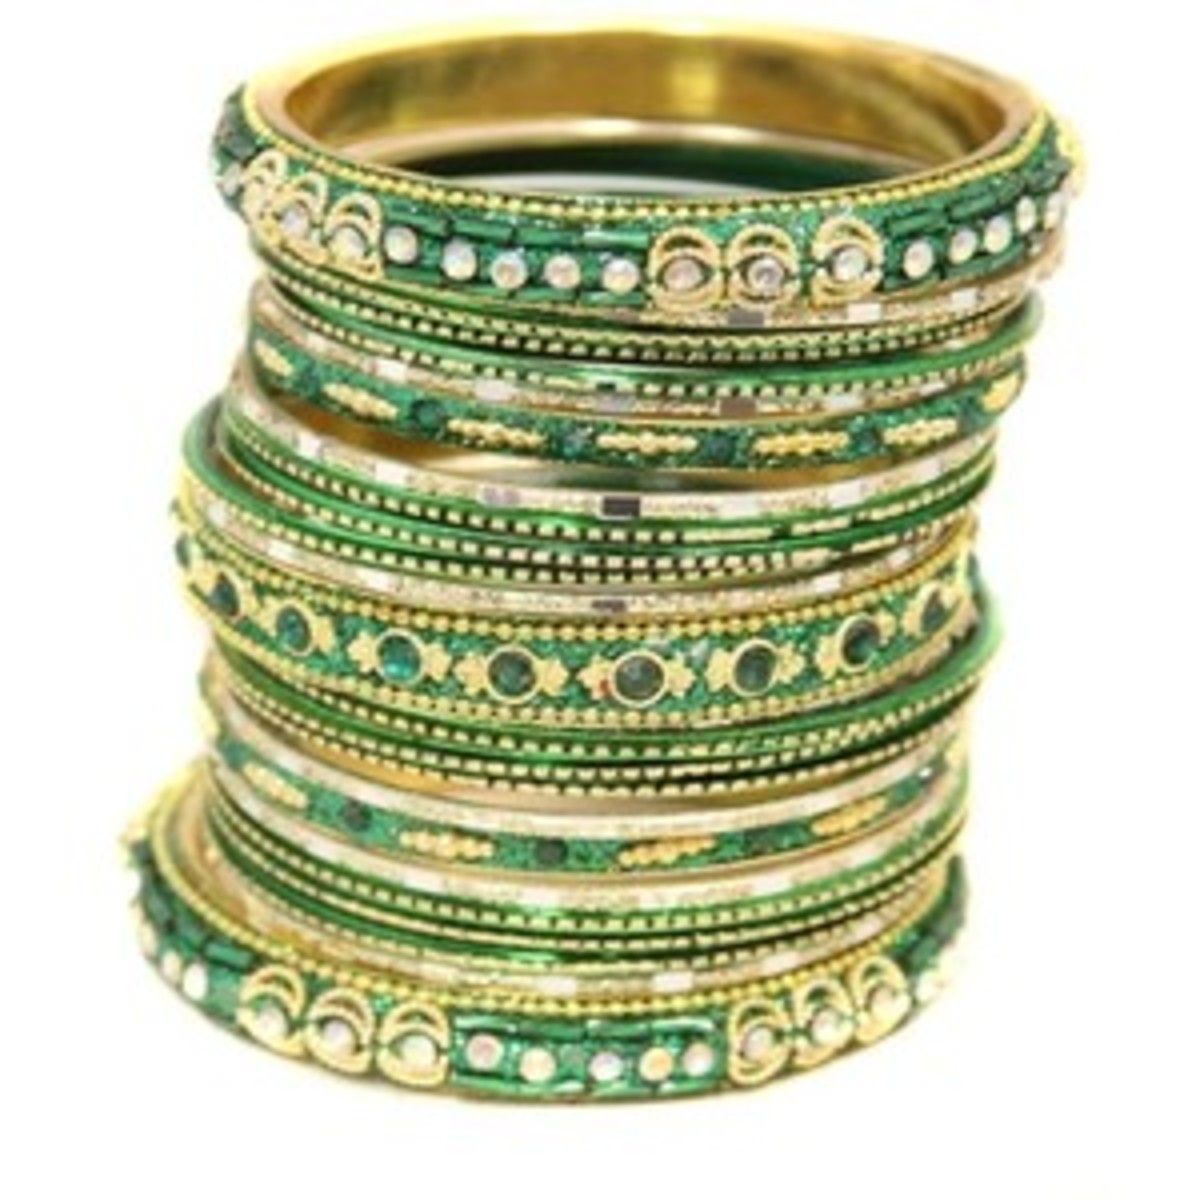 Bangles in green gold